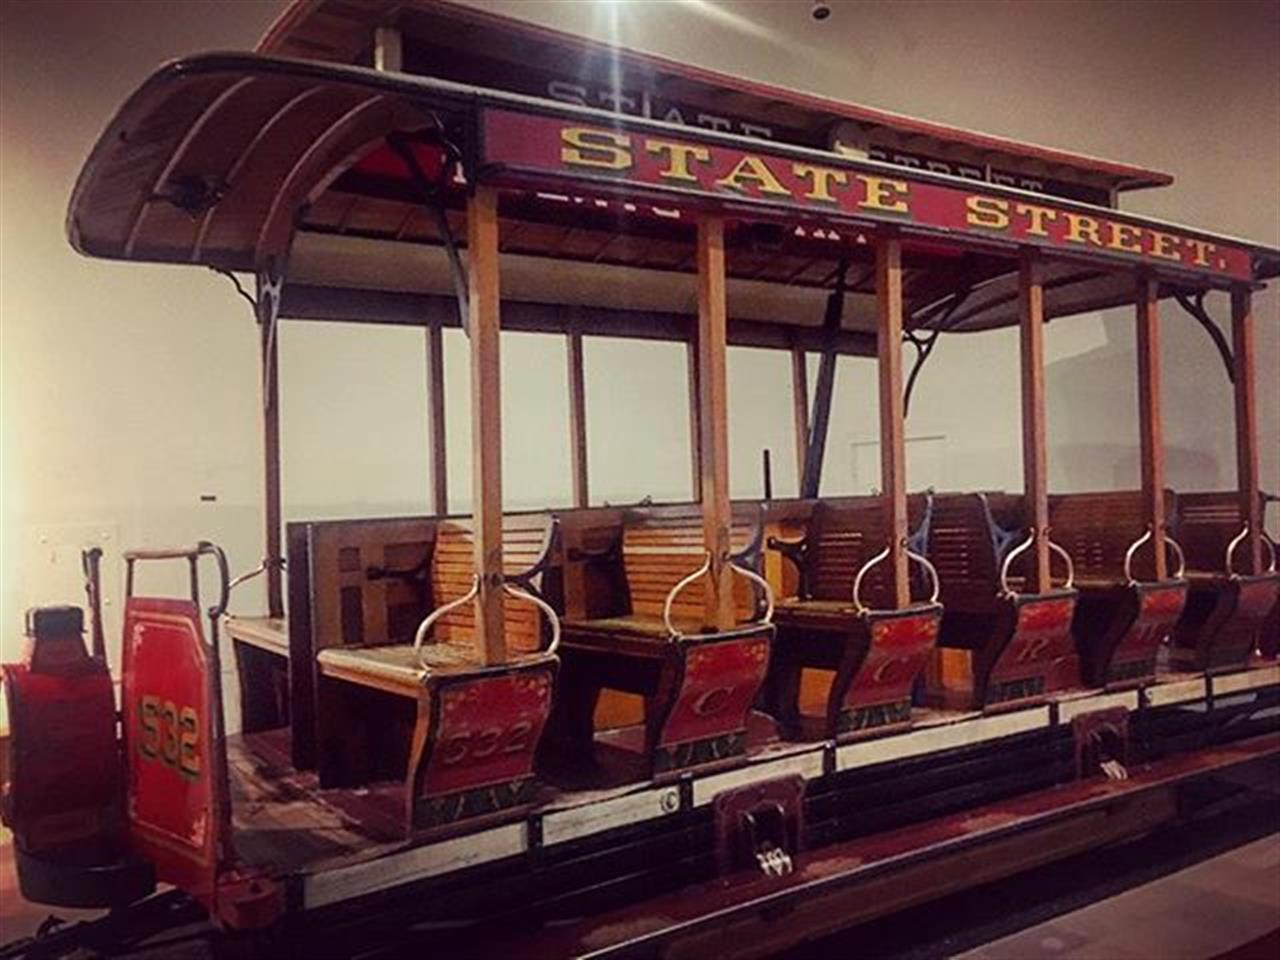 An old #Chicago street car that rode down historic State Street housed in the Museum of Science and Industry. #chicago #msichicago #museums #statestreet #hydepark #leadingrelocal #bairdwarner